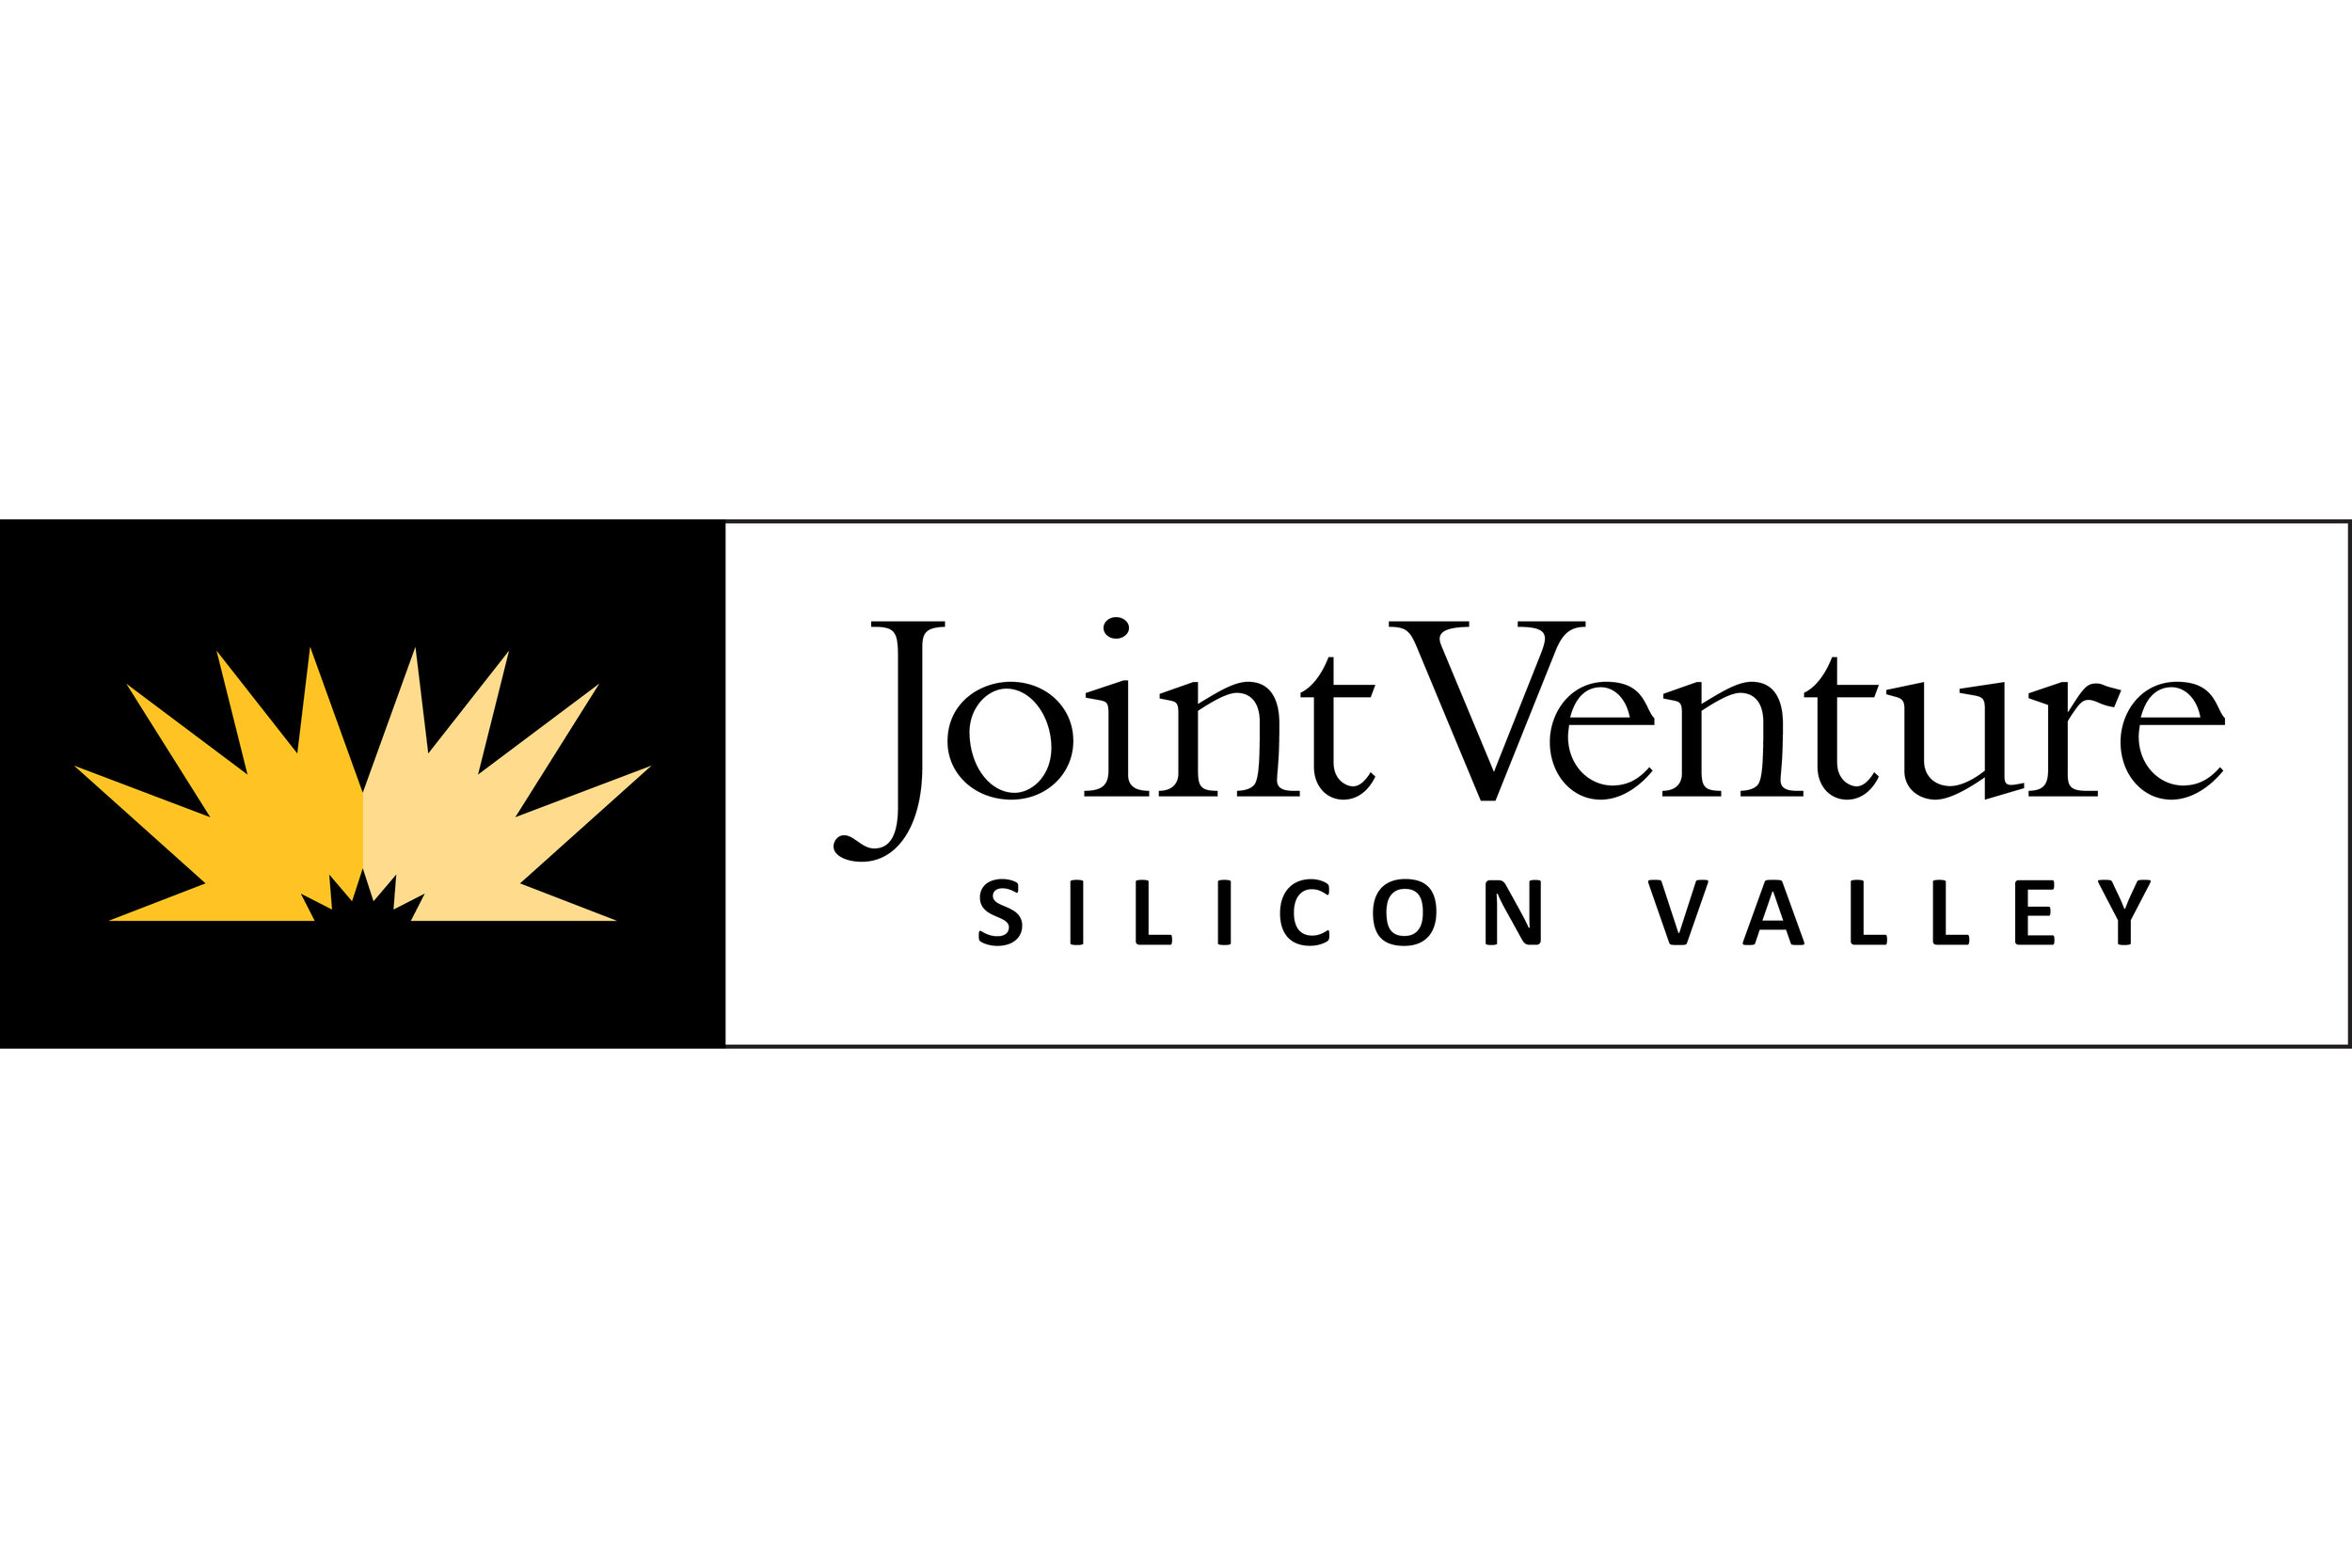 Joint Venture Silicon Valley